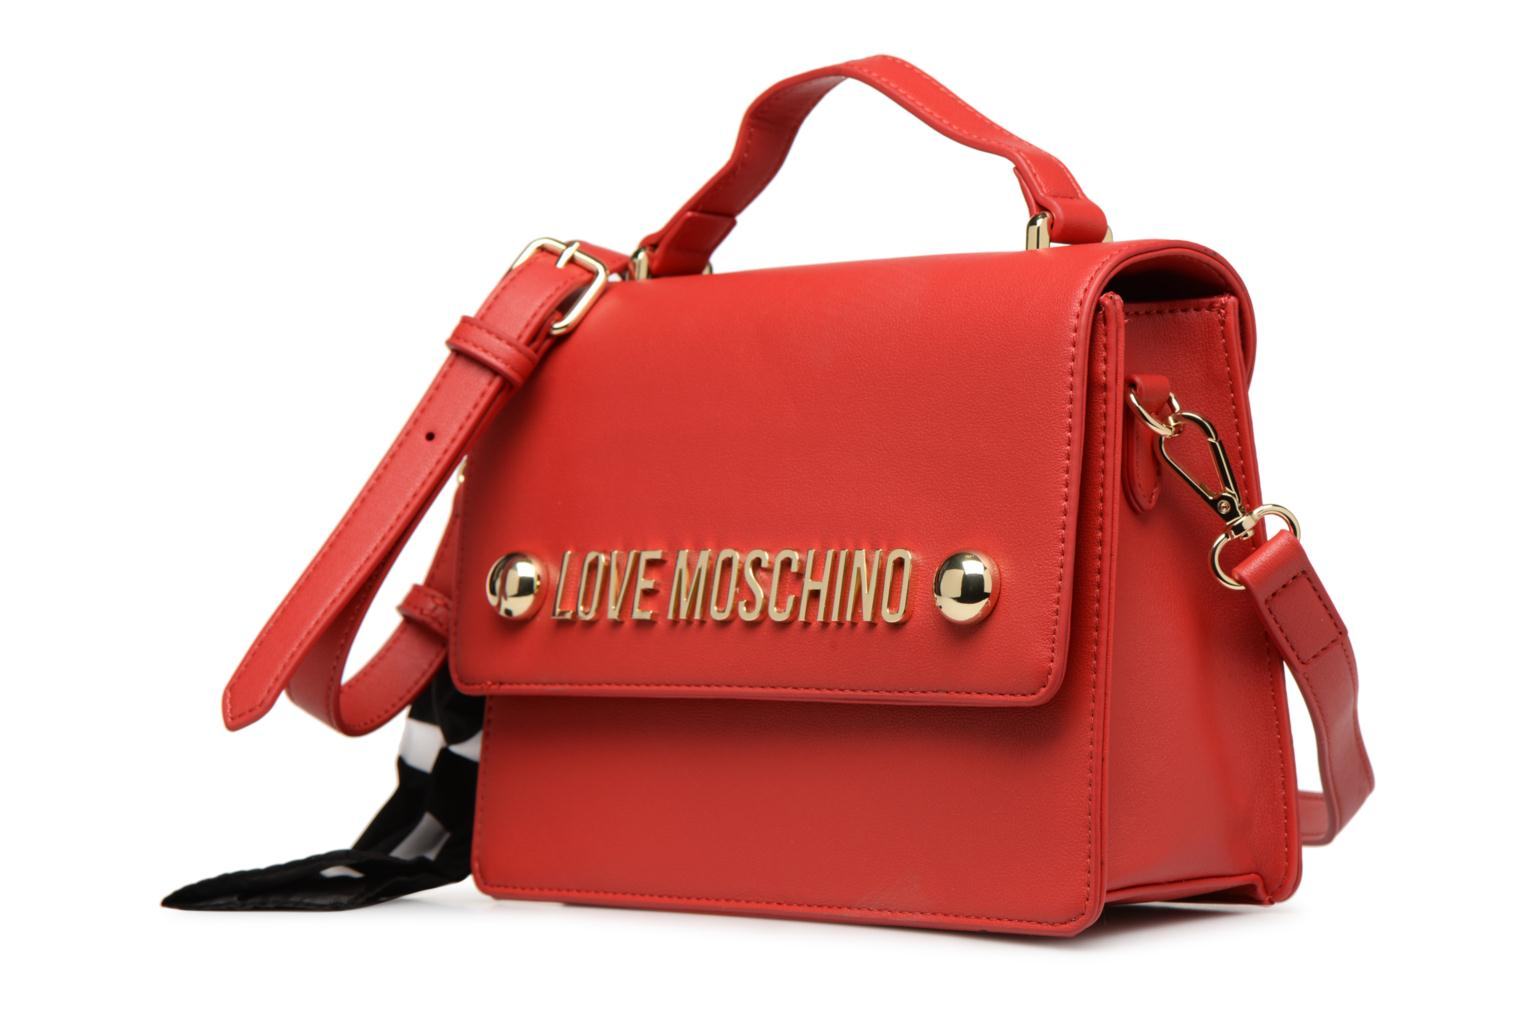 0500 Bag Roso Lettering Moschino Love tOZqRR